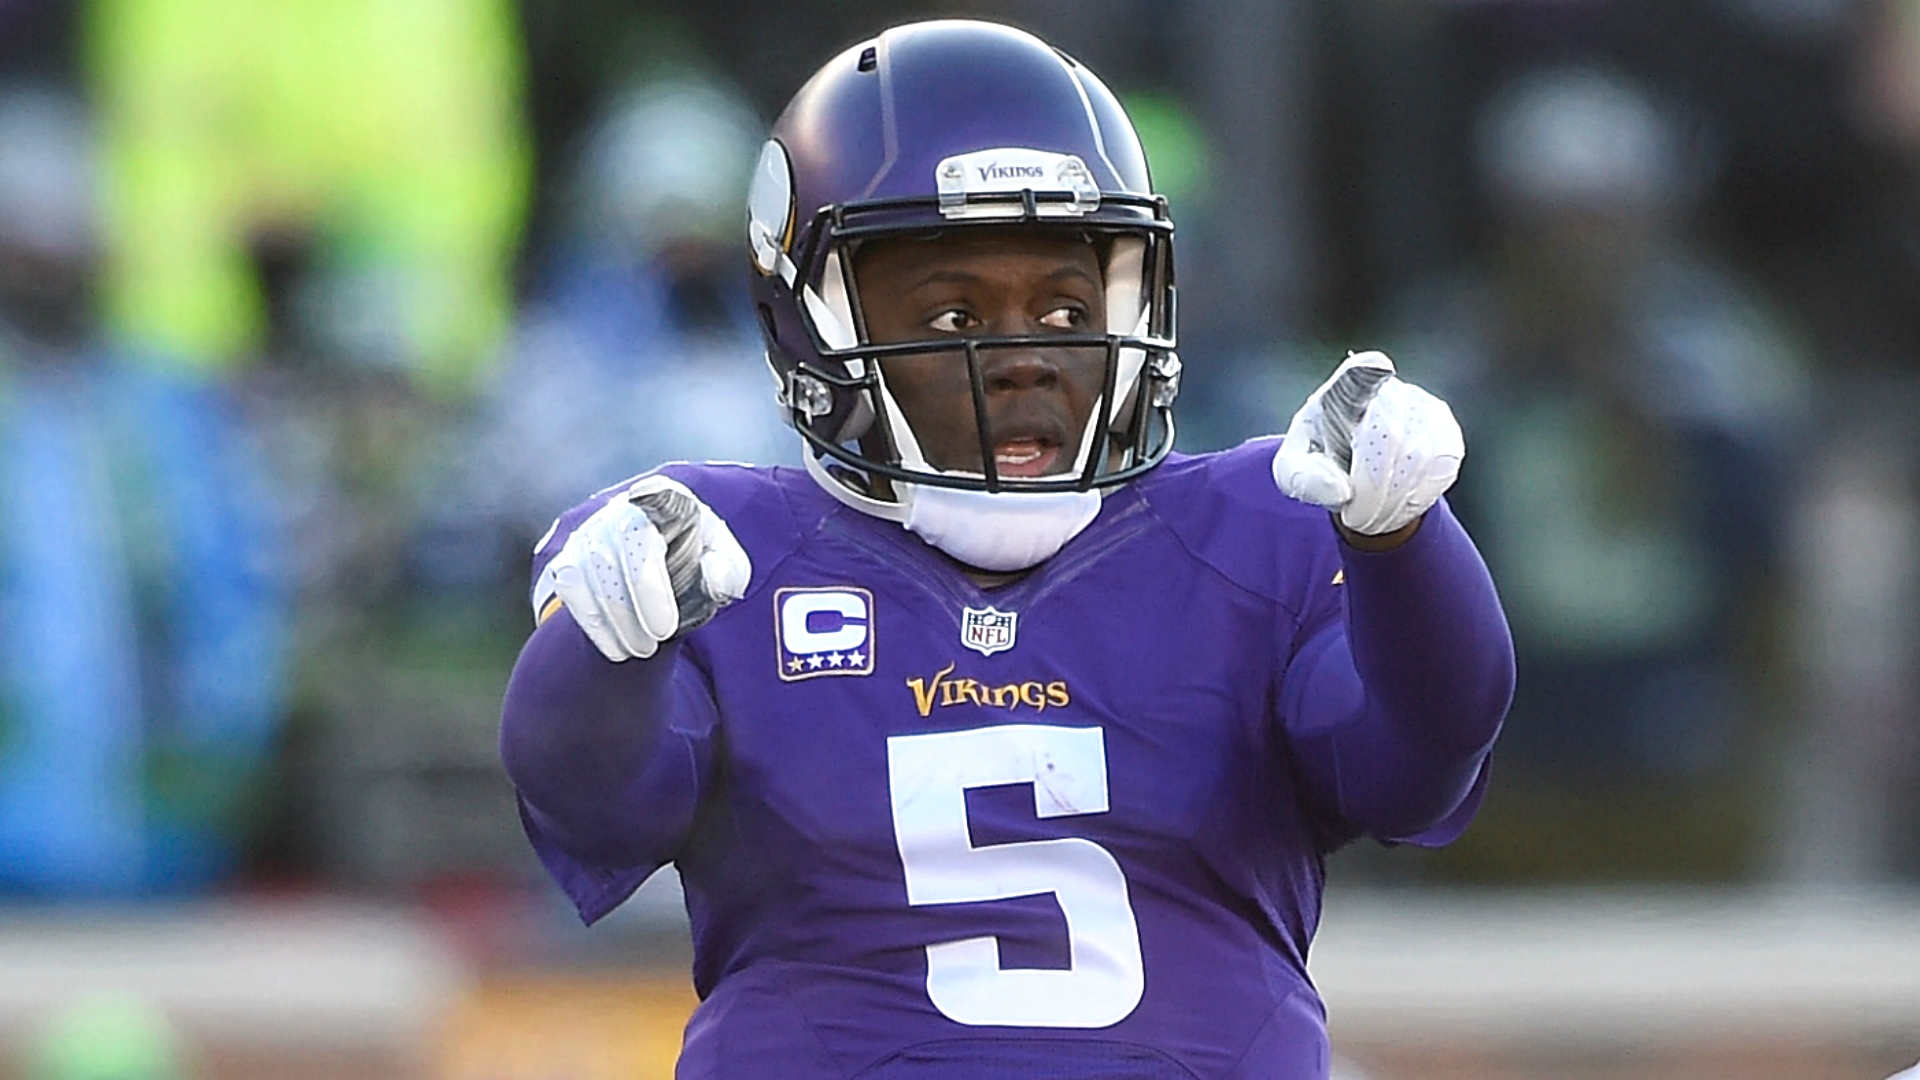 NFL free agency rumors: Teddy Bridgewater passes physical, set to sign with Jets